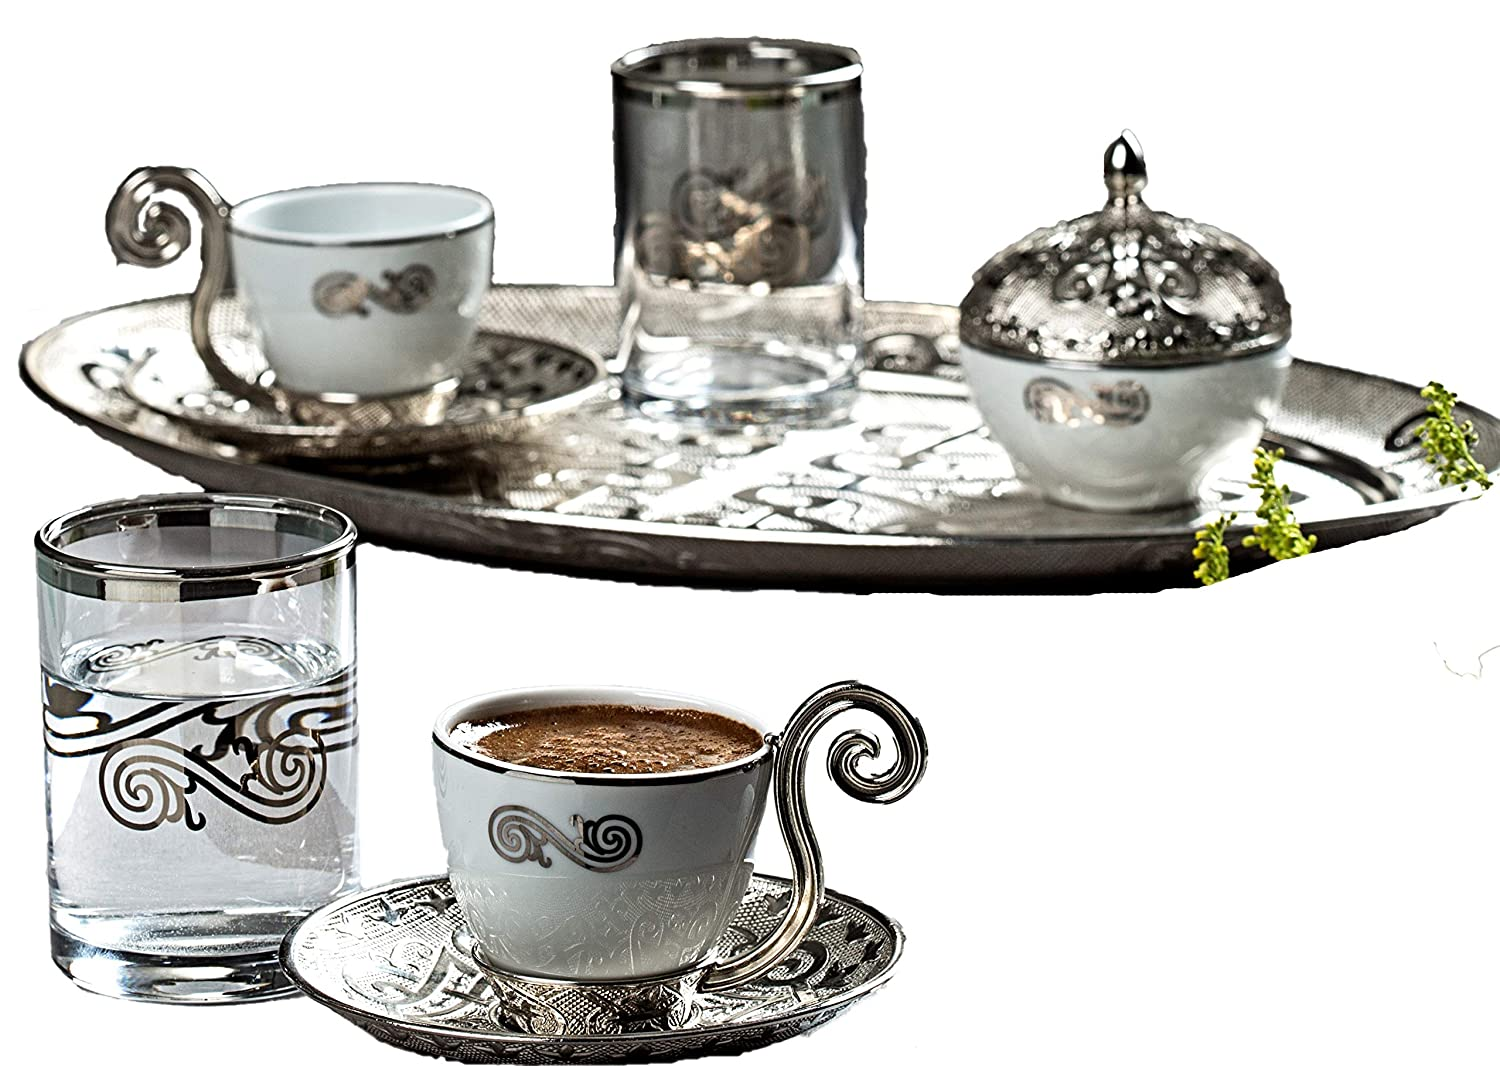 Premium Silver plated Coffee Set for Turkish, Arabic, Greek and Espresso coffee - Made in Turkey - 11 pieced set, Silver Gold Case Sprl-11